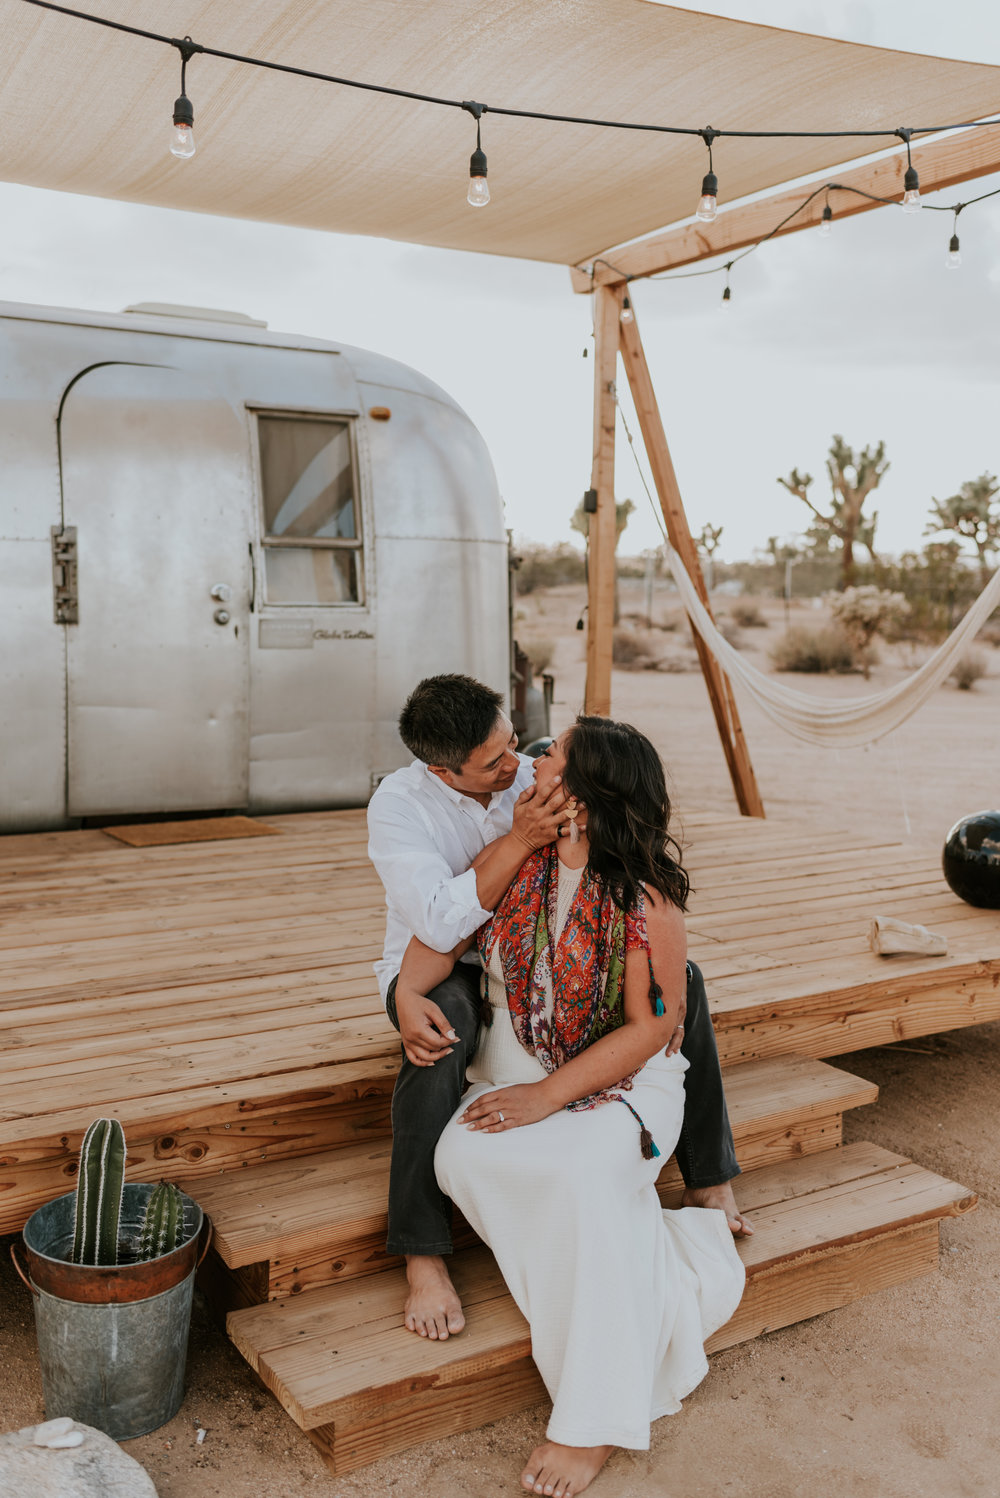 joshuatreeairstreamcouplessessioncarrierogersphotography-10.jpg